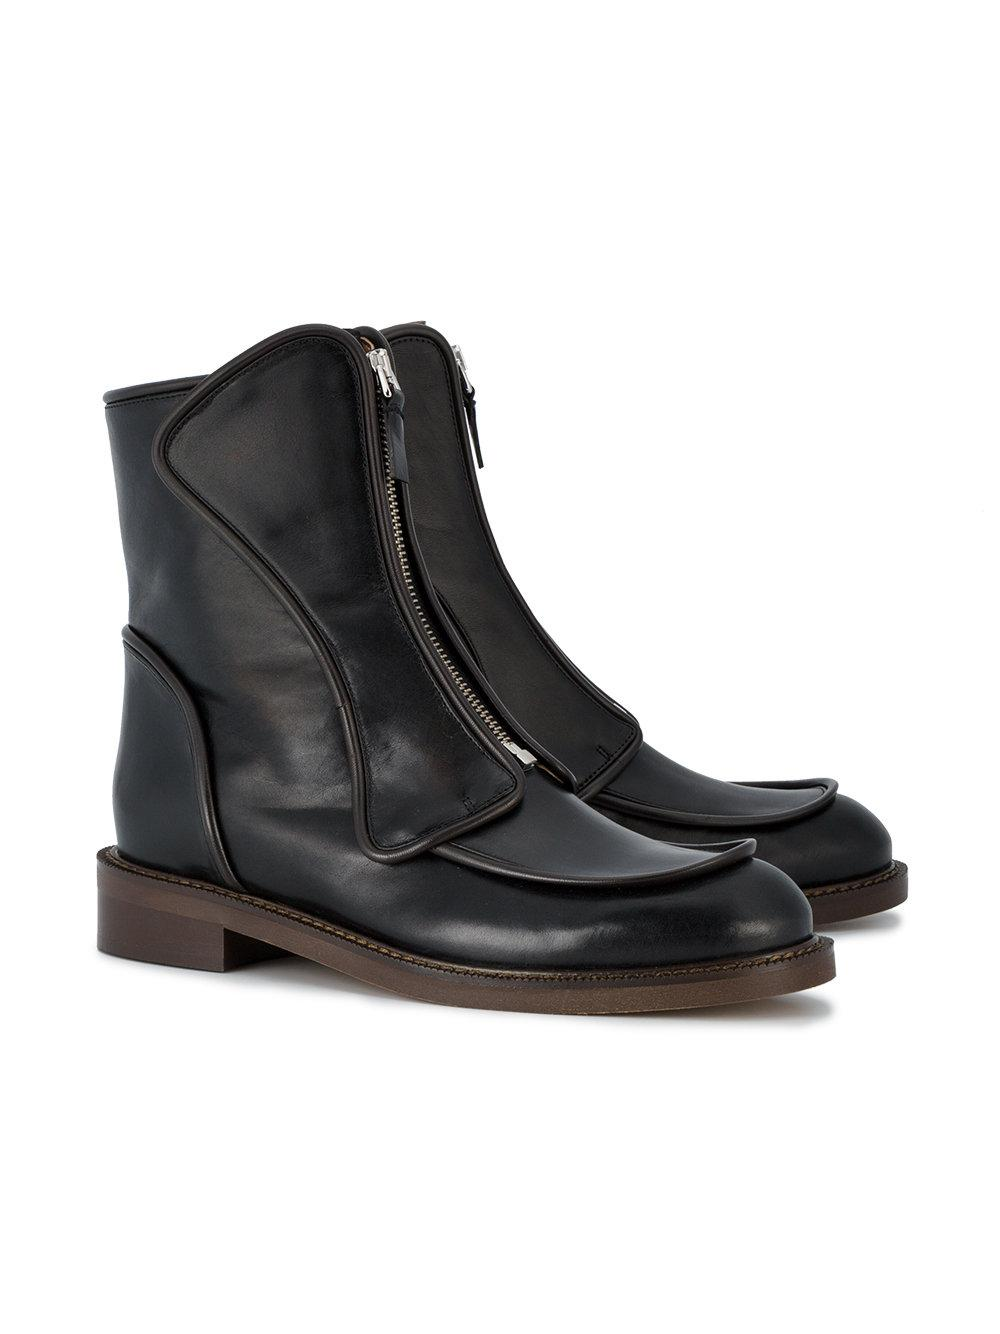 Marni Rubber Flat Ankle Boot With Zip Front in Black